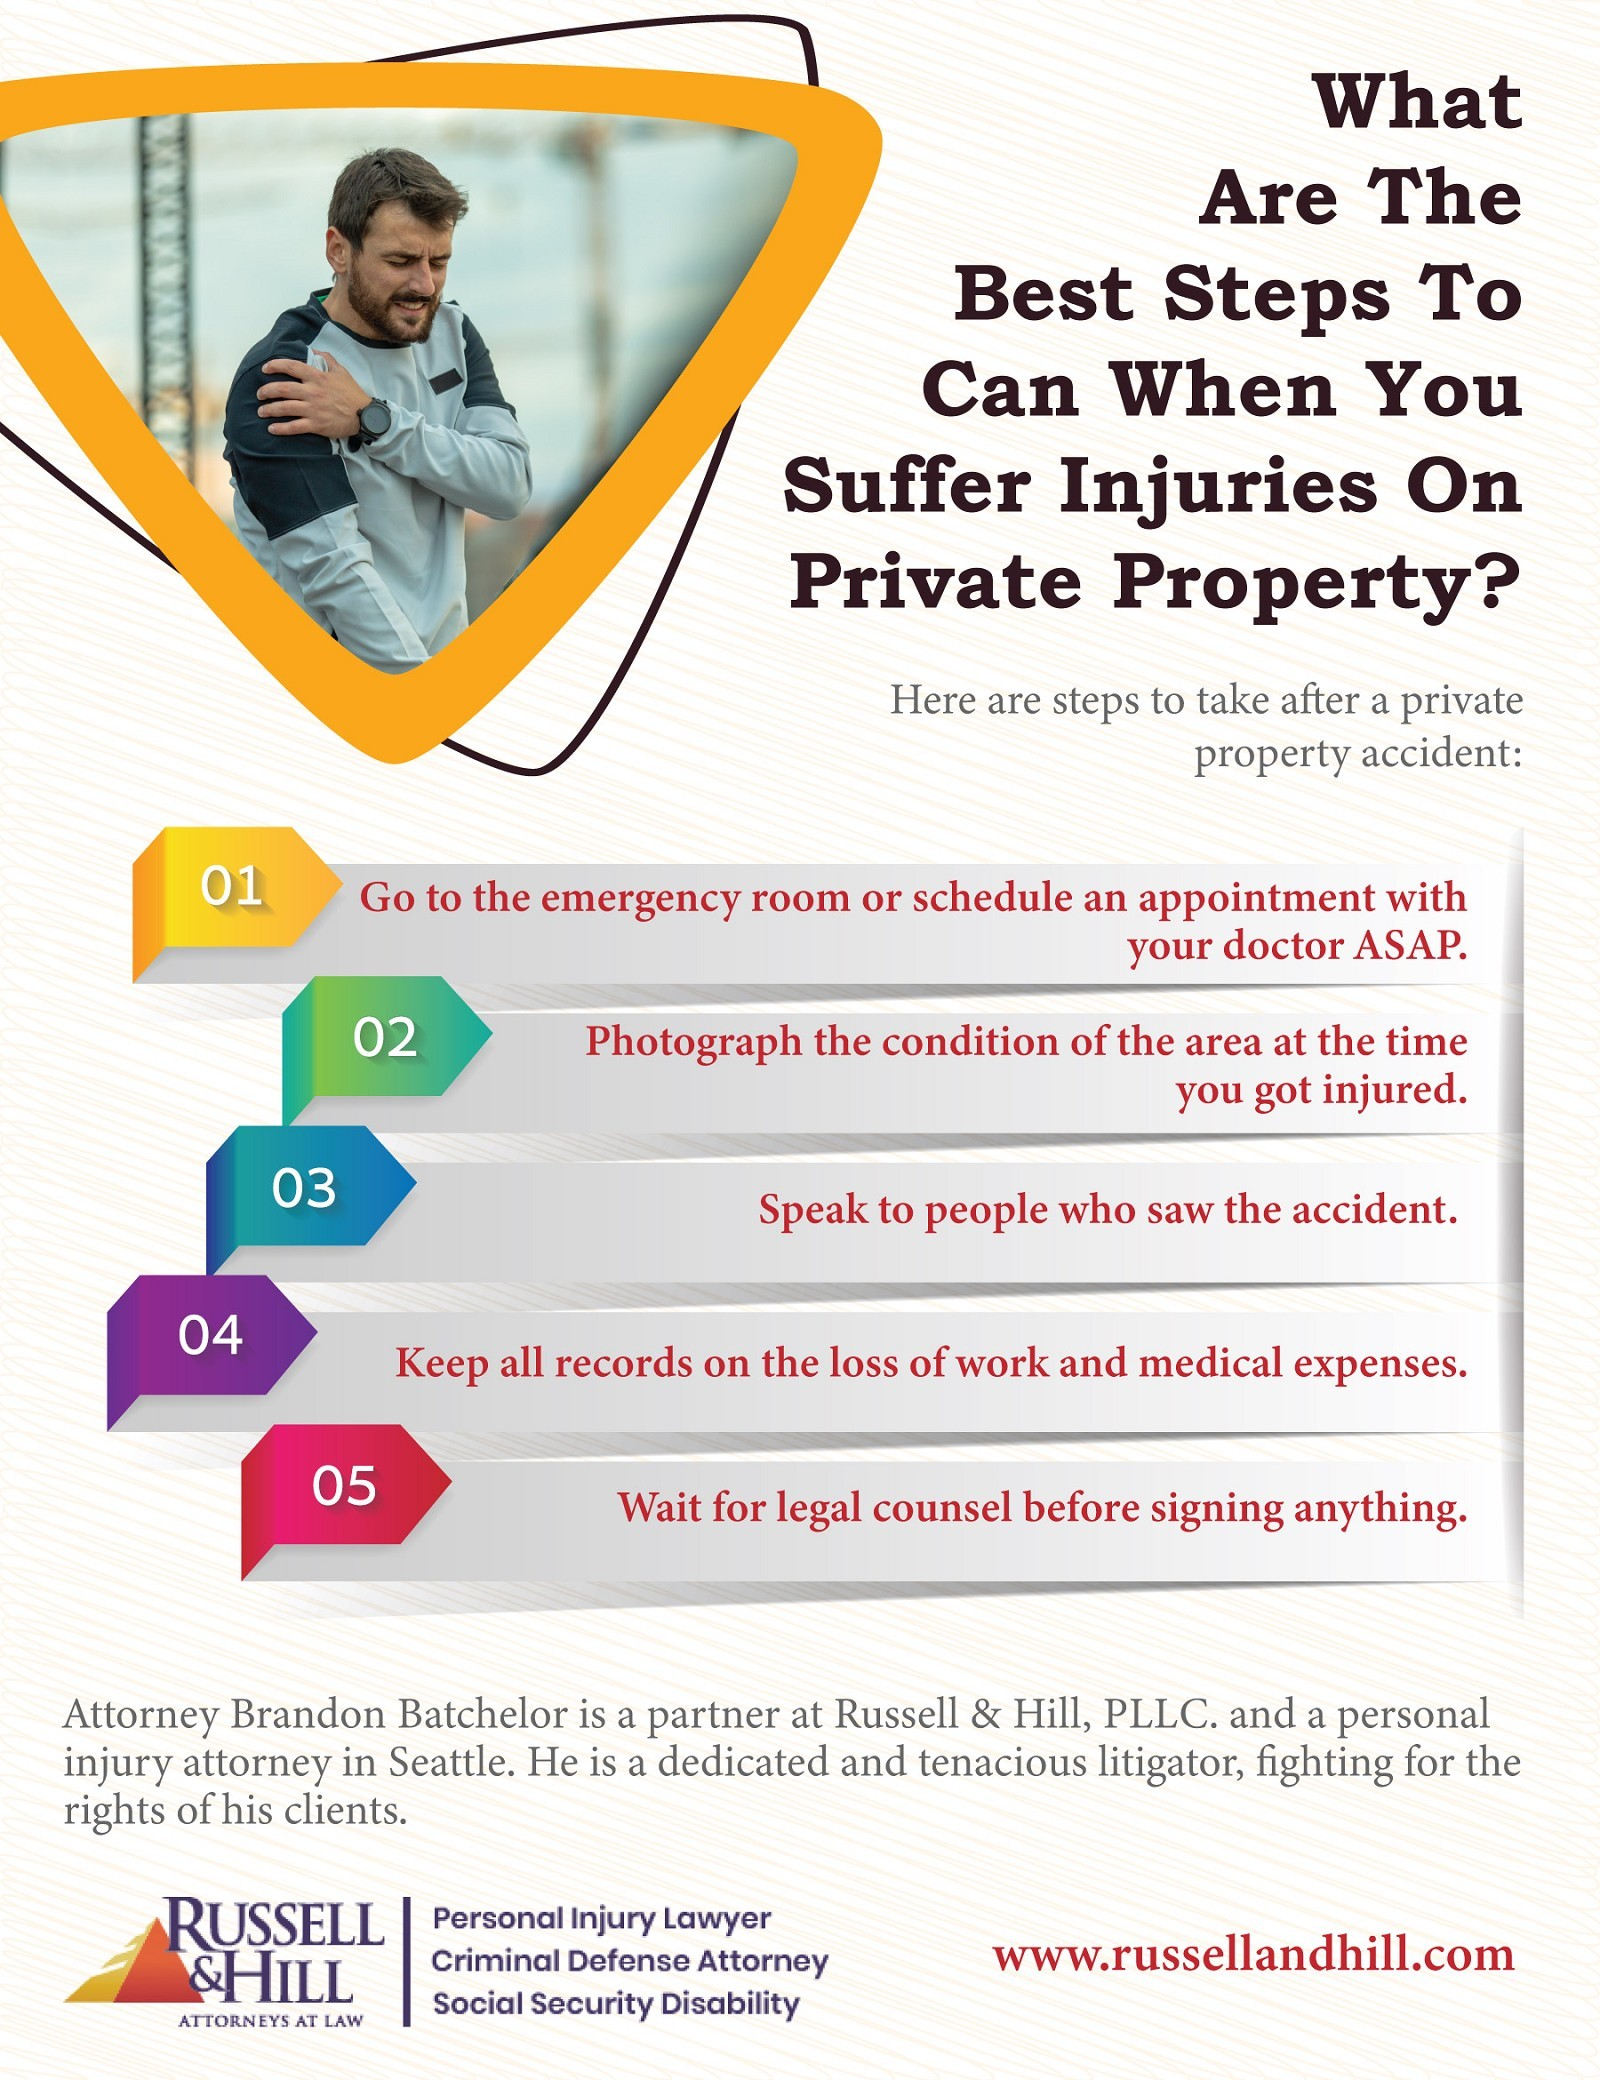 What Are Steps To Can When You Suffer Injuries On Private Property?